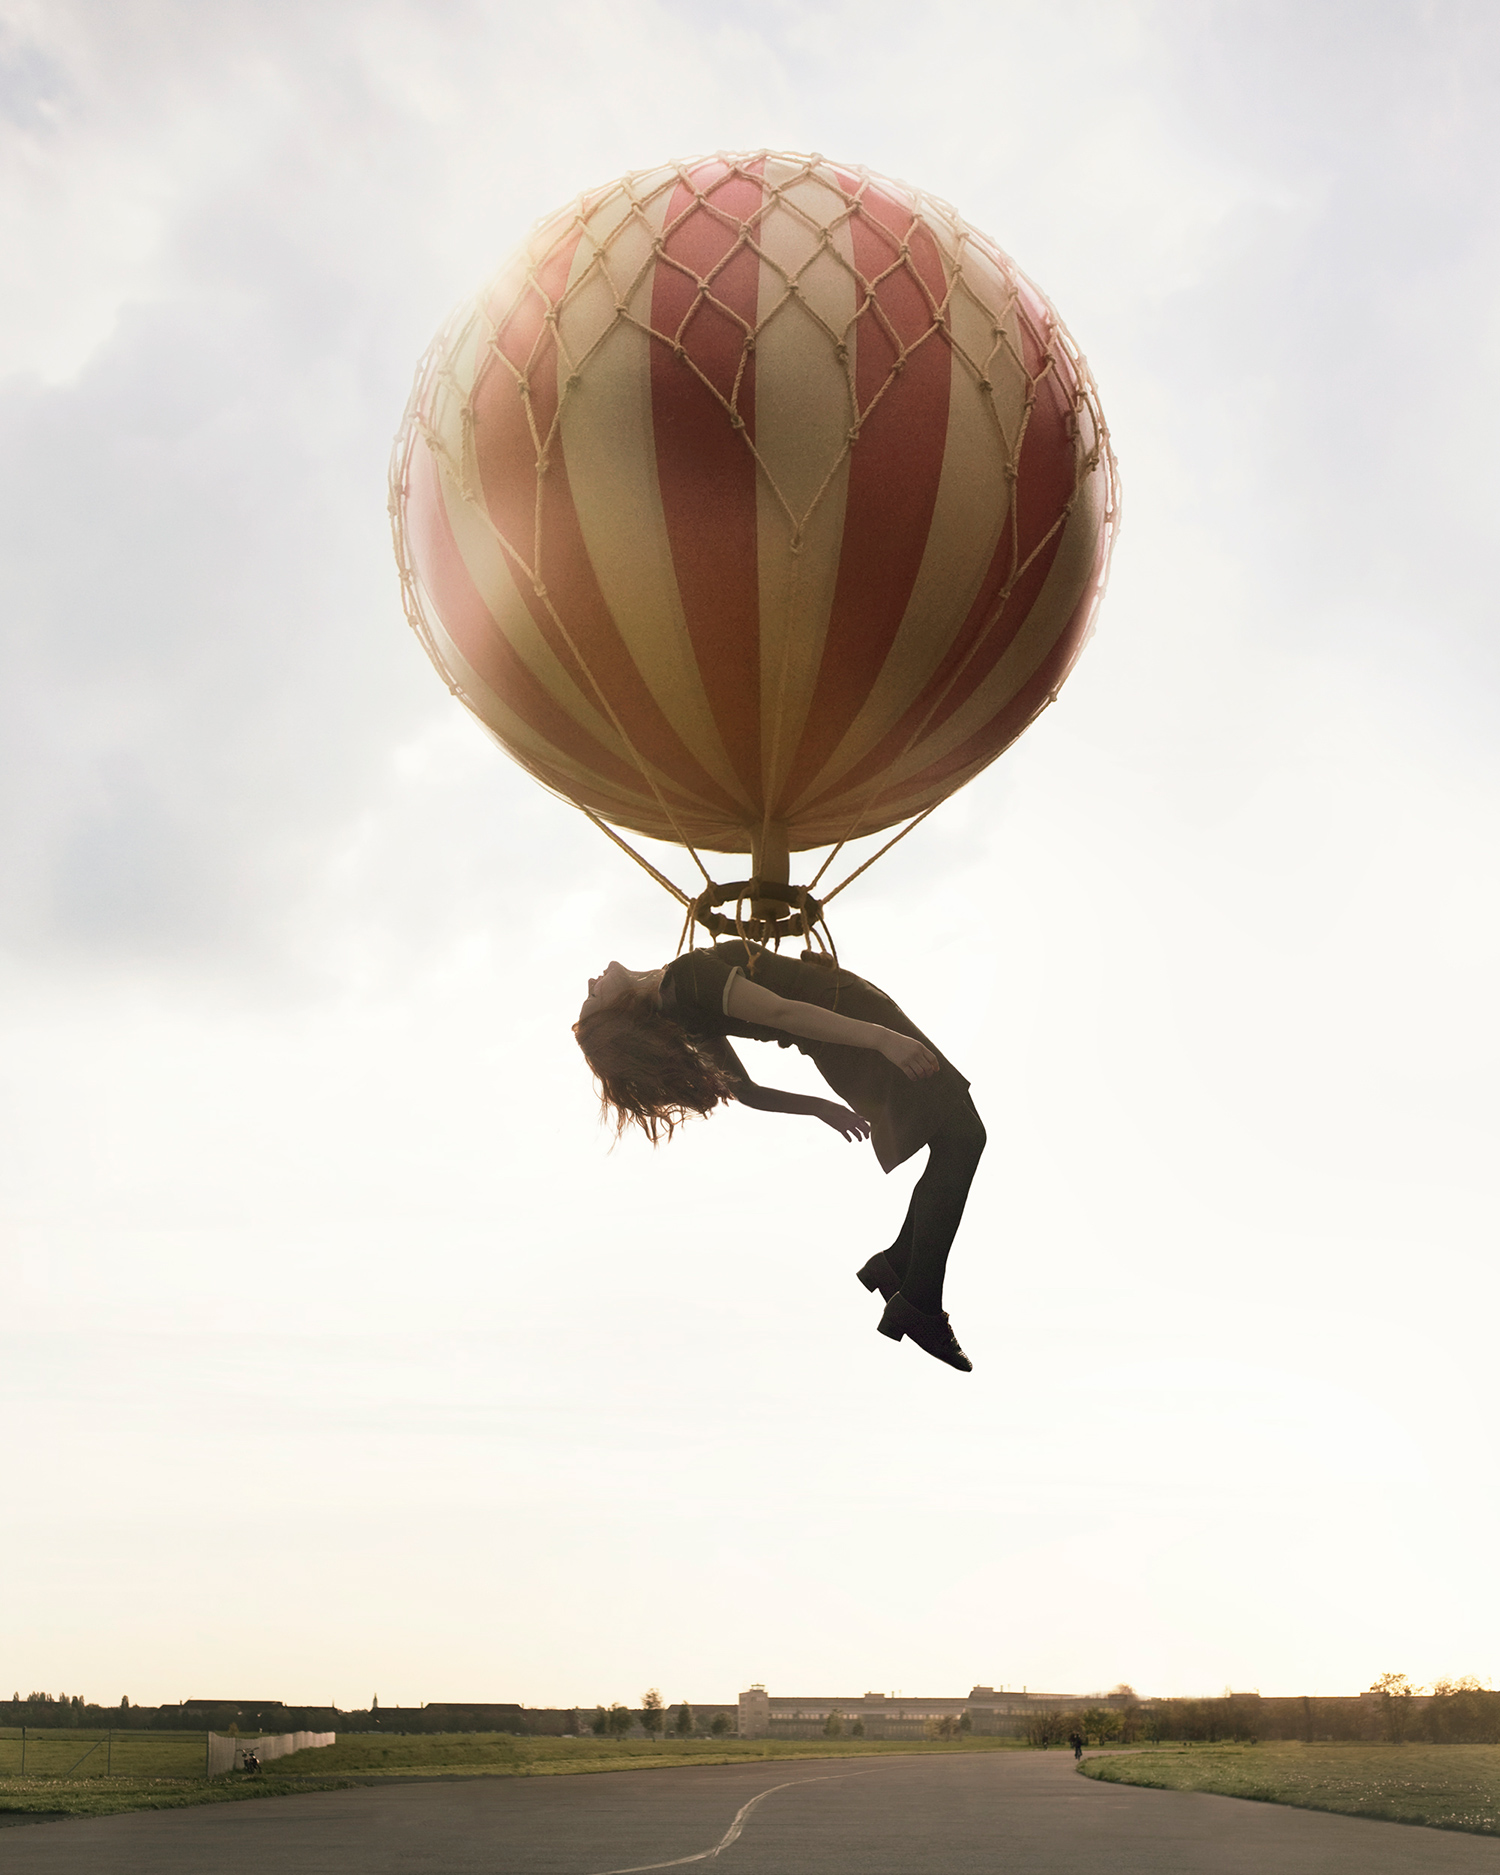 Maia Flore, Sleep Elevations - balloon